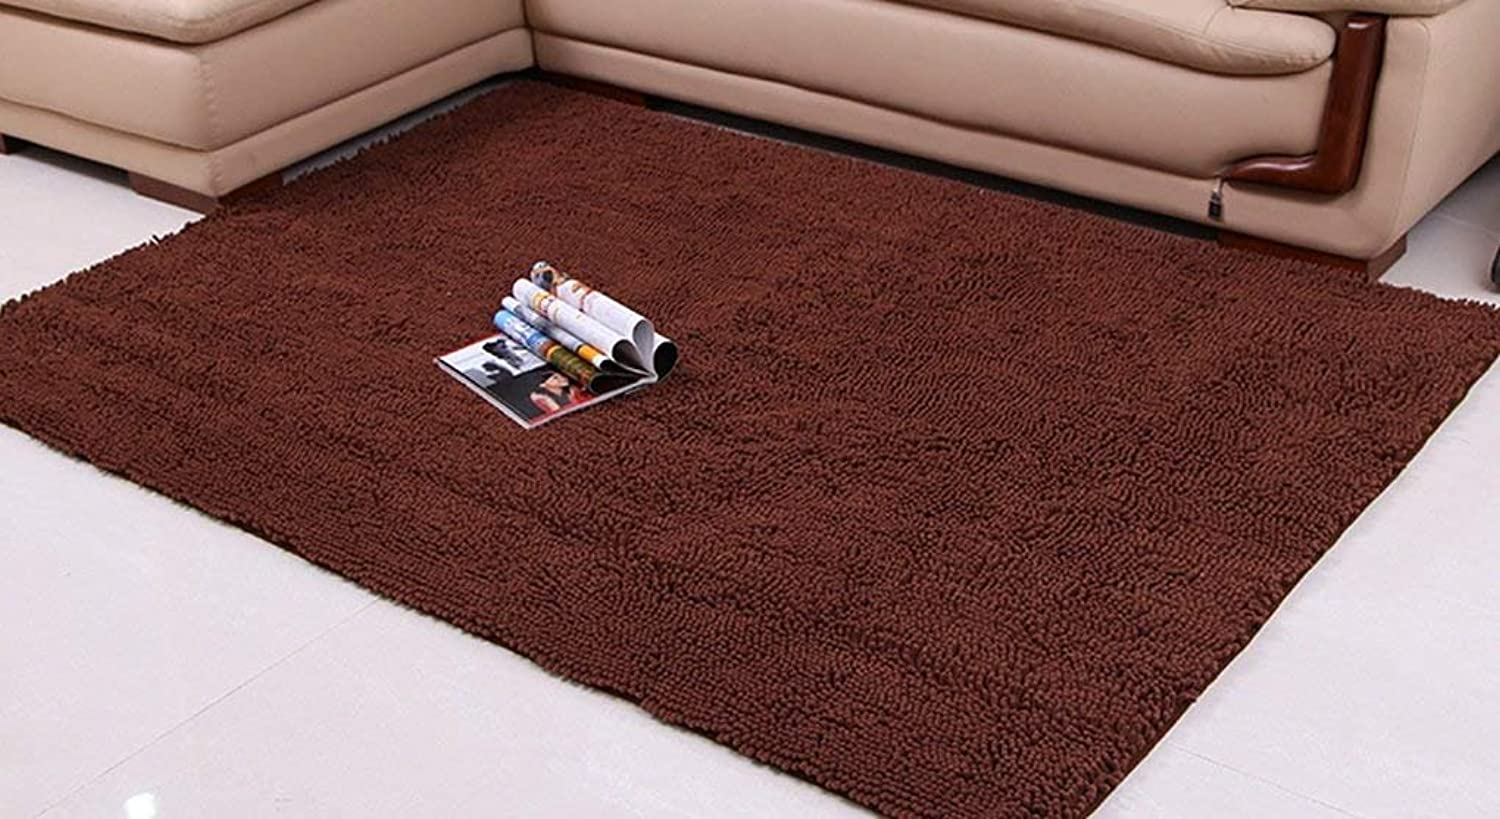 Chenille Rugs, Modern Thicker Living Room Bedroom Bay Window The Door Carpet Bathroom Water Absorption Non-Slip mat Soft and Comfortable (color    2, Size   70  140cm)